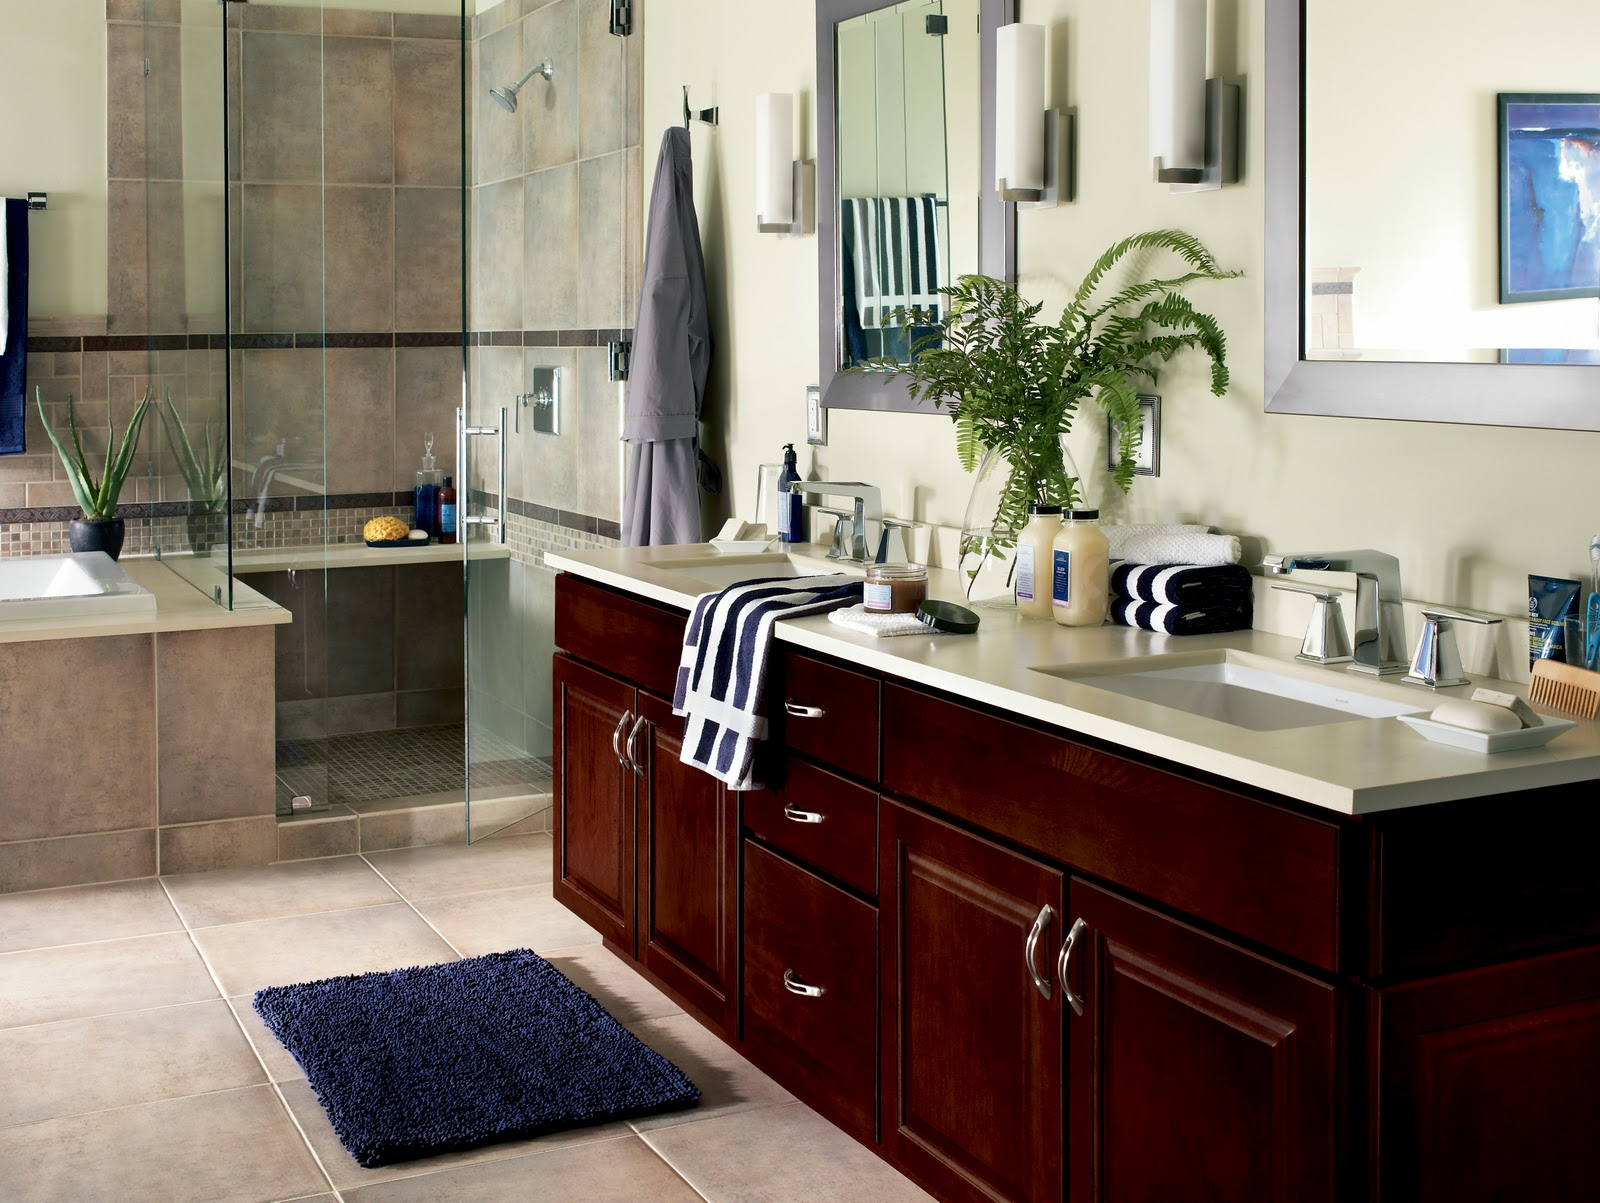 Bathroom Remodeling - Bath Remodel Contractor on Restroom Renovation  id=85915